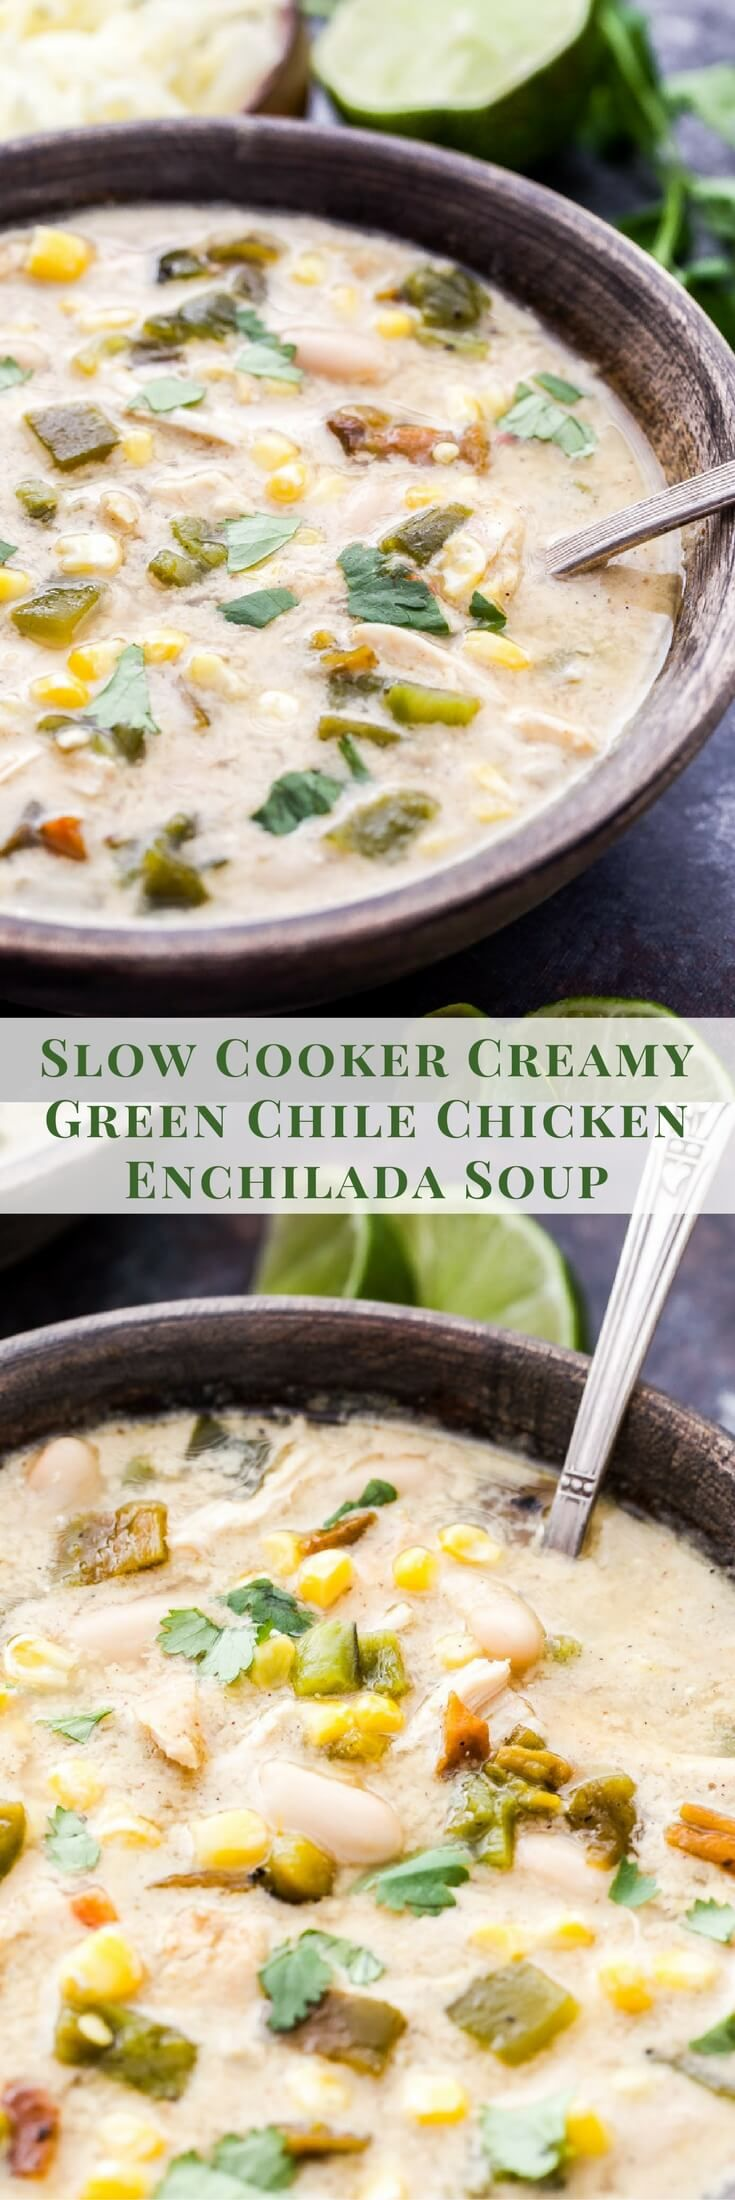 This Slow Cooker Creamy Green Chile Chicken Enchilada Soup has all the wonderful flavor of the enchiladas without all the work! Hearty, creamy, full of green chiles and totally satisfying! #soup #slowcooker #greenchiles #chicken #enchiladas #glutenfree #healthyrecipe